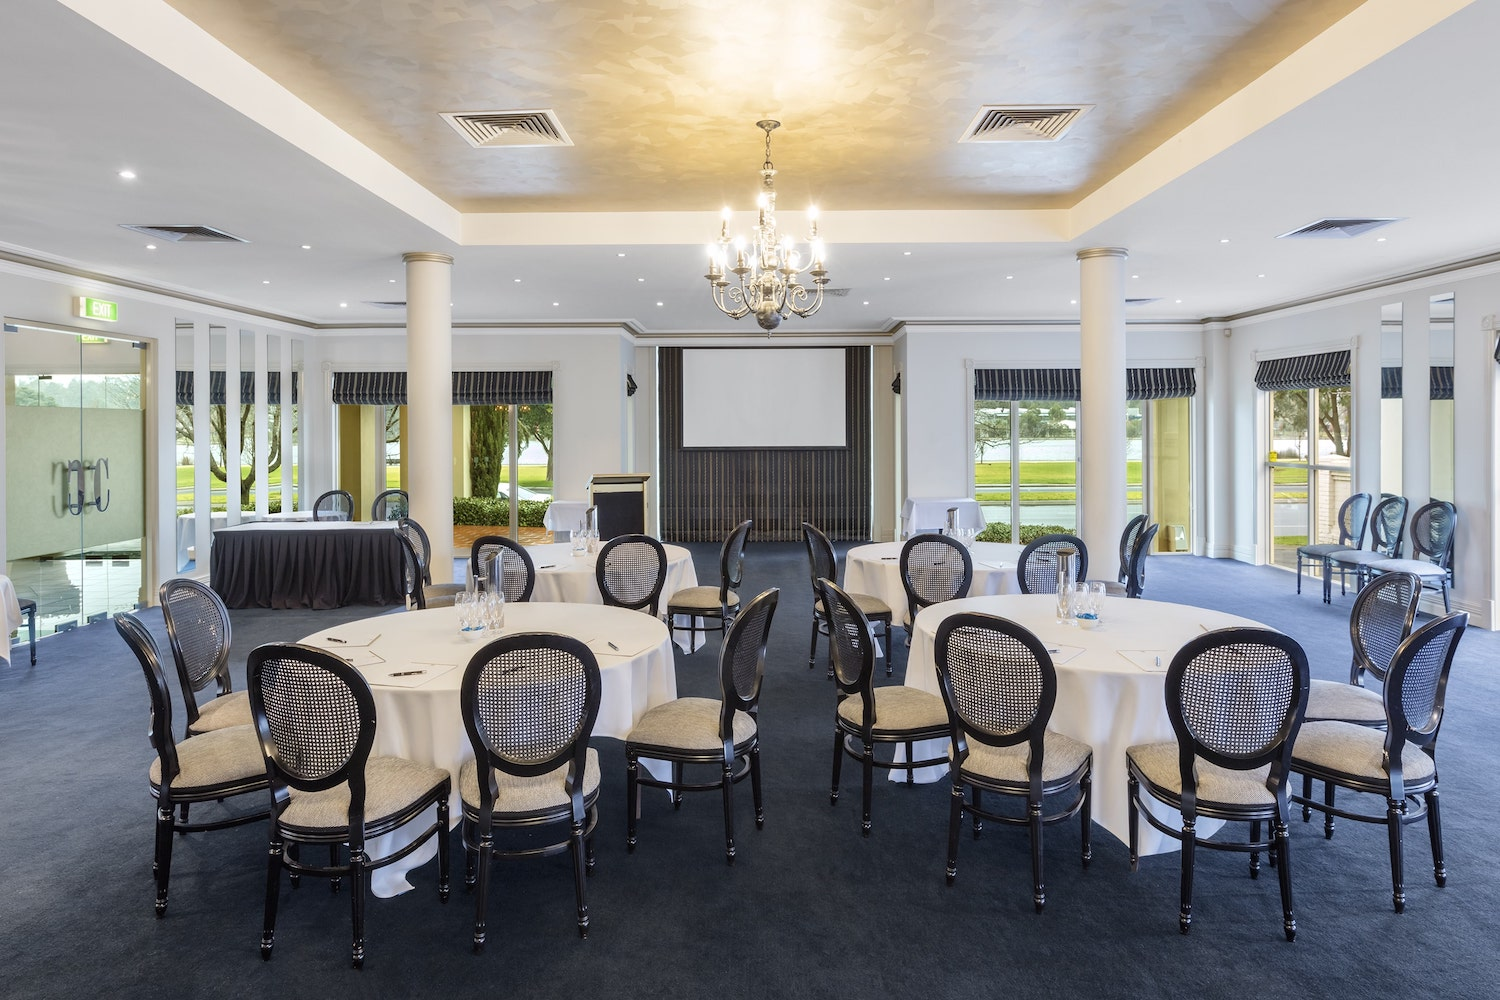 best-western-plus-the-carrington-shepparton-hotel-accommodation-conference-2.jpg